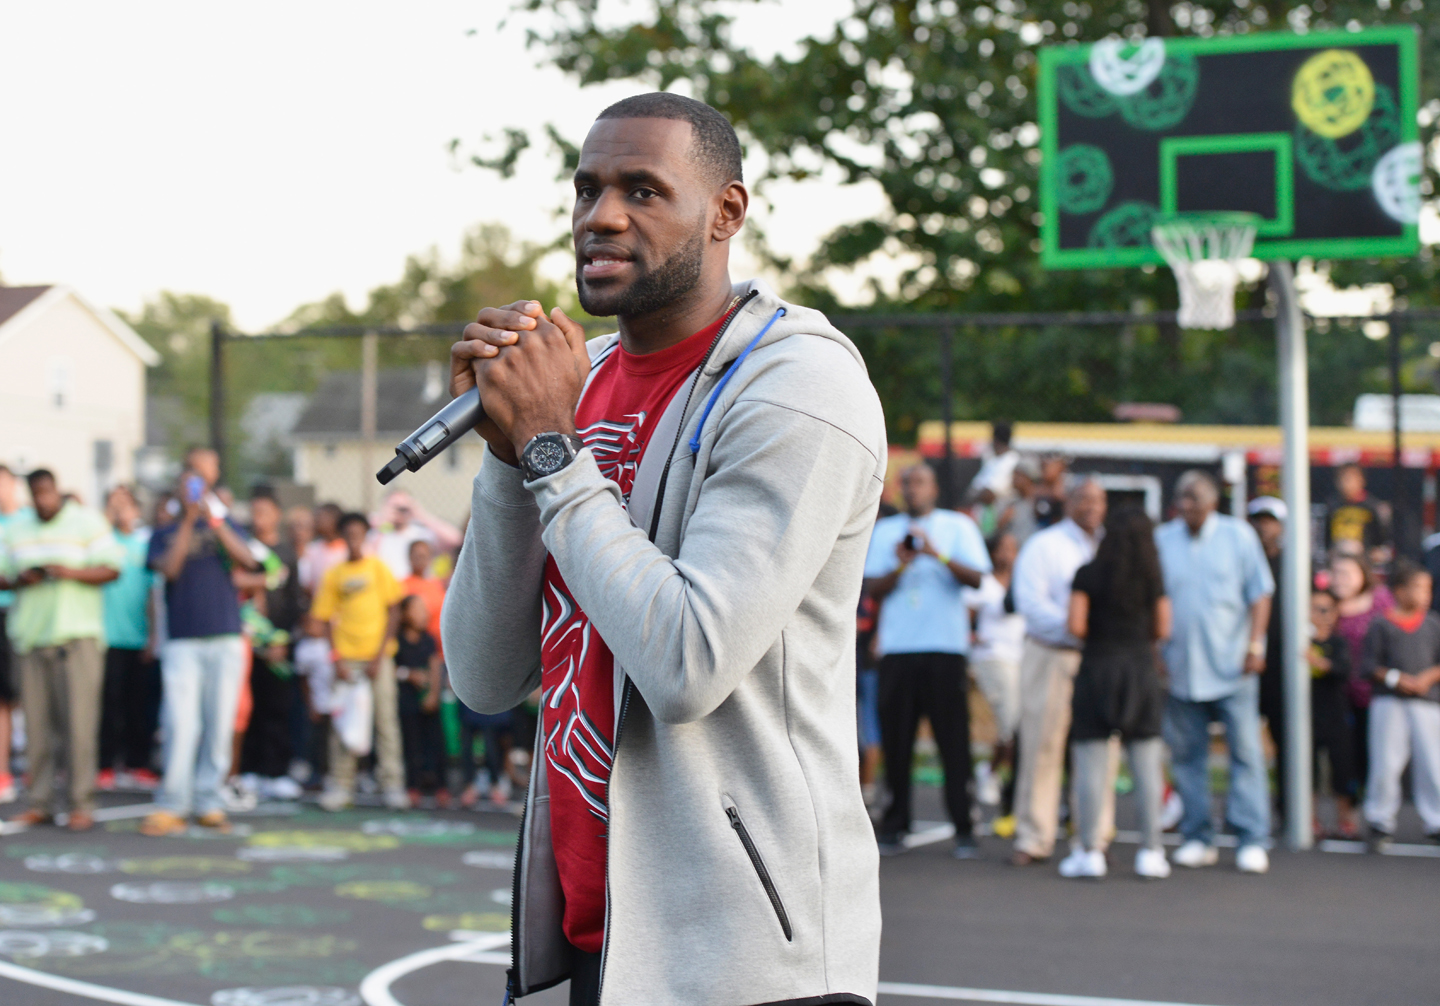 AKRON, OH - SEPTEMBER 25: LeBron James joined Sprite to reveal two refurbished outdoor basketball courts with painted artwork by Futura at Patterson Park on September 25, 2014 in Akron, Ohio. (Photo by Duane Prokop/Getty Images for Sprite)